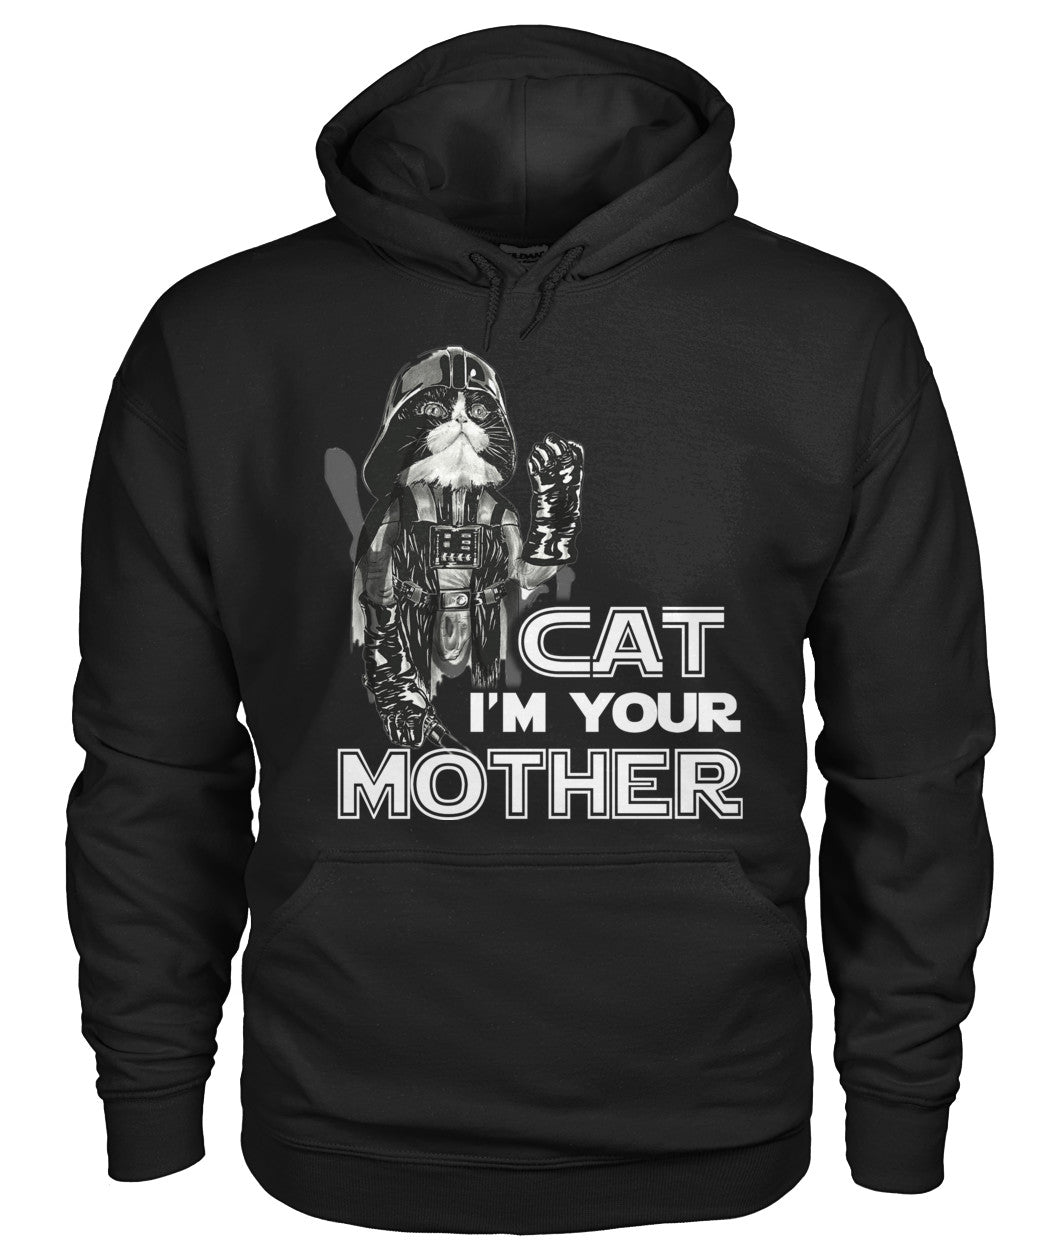 Cat, I'm your mother